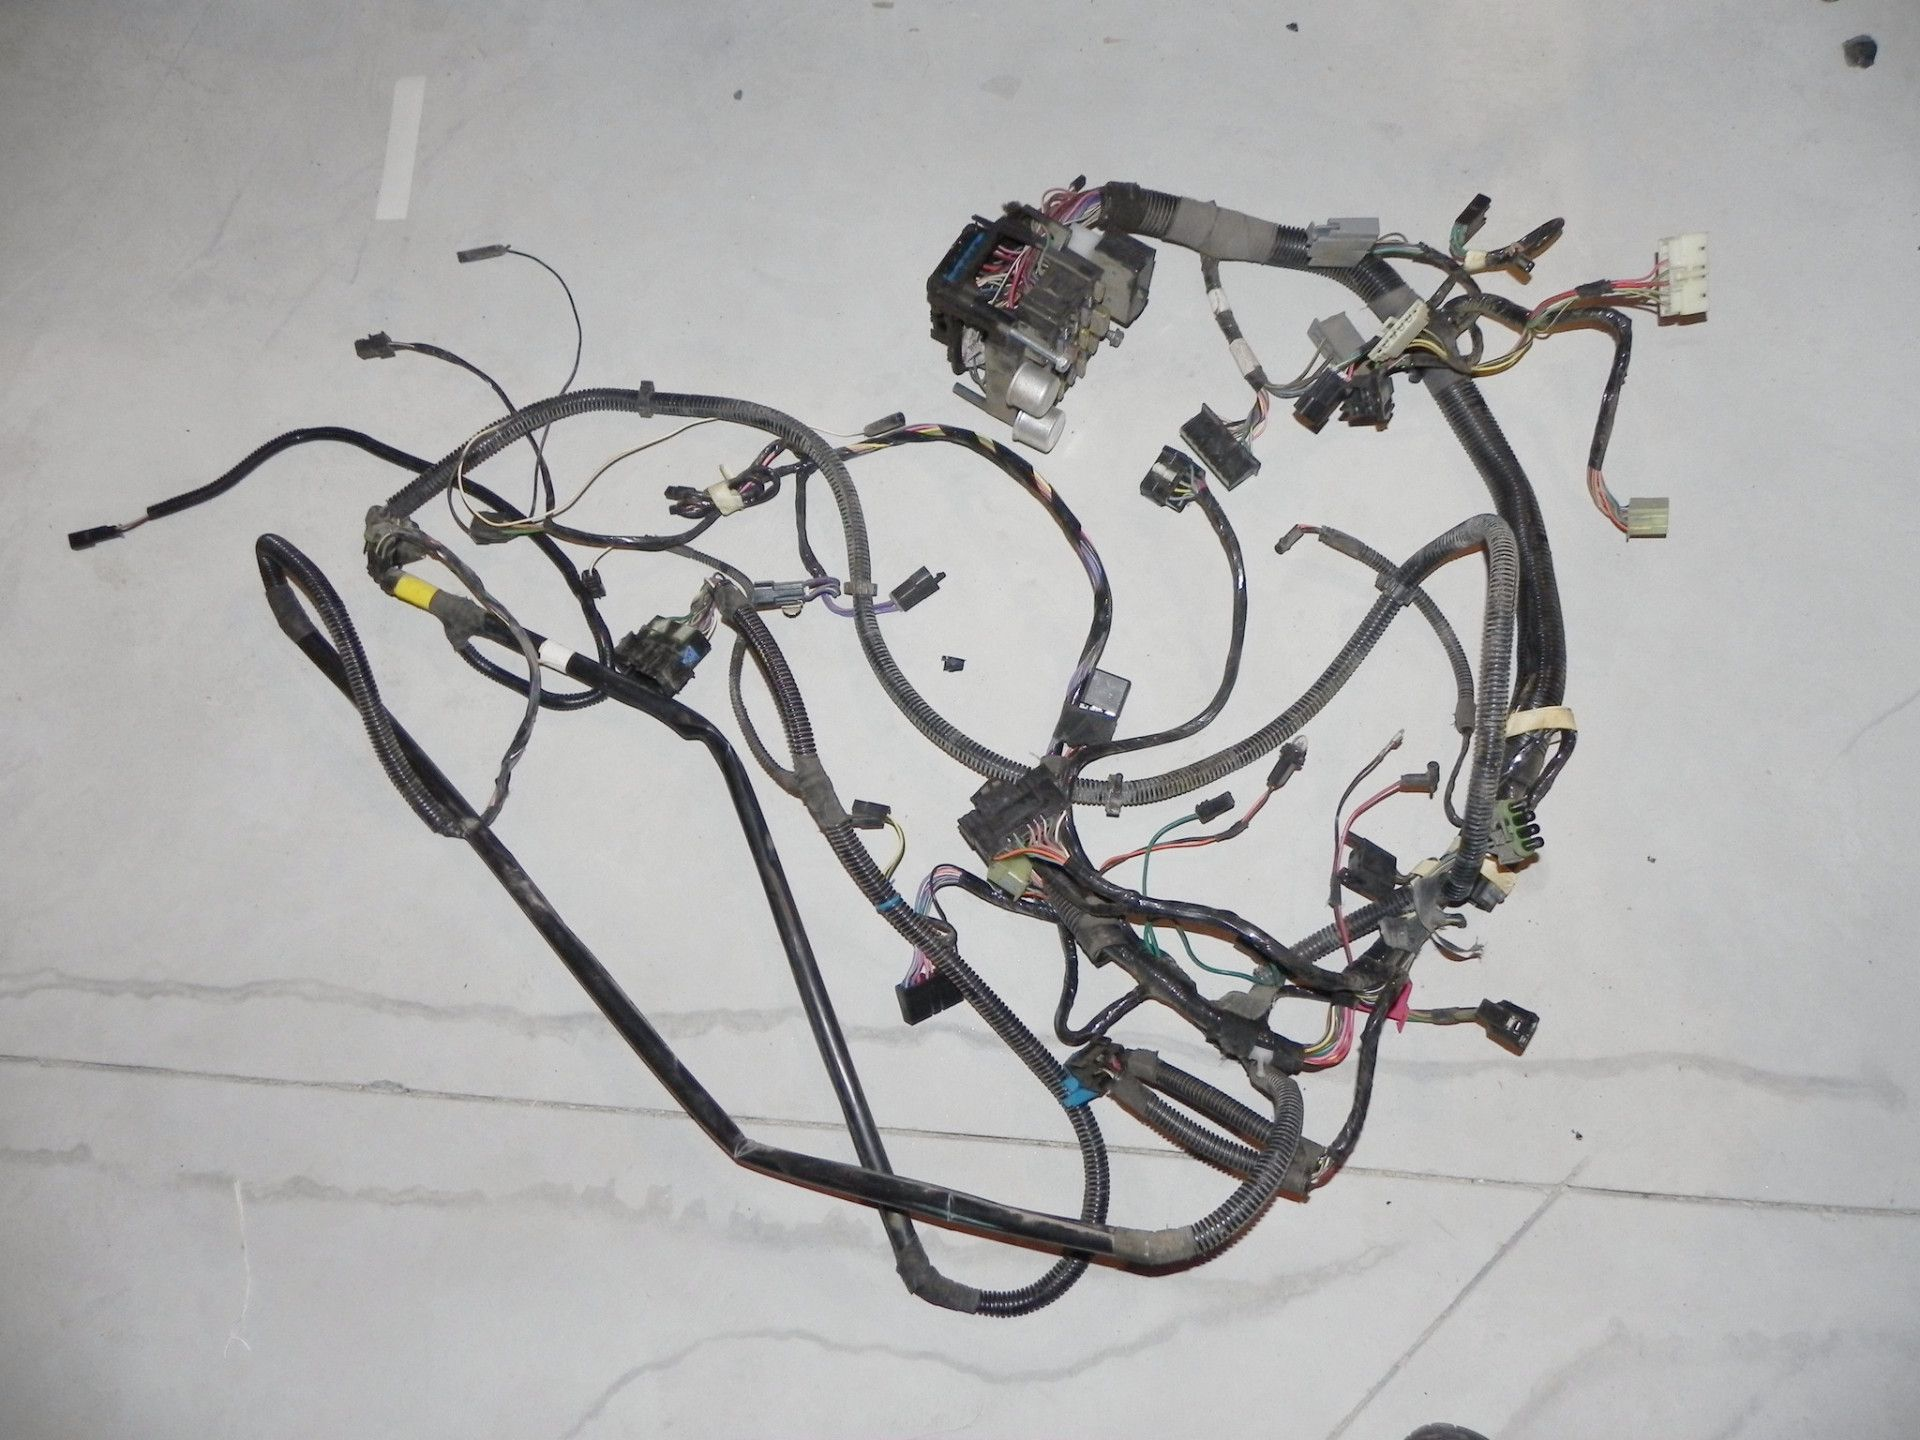 jeep wrangler yj interior under dash wiring harness 92 95 jeep  jeep under dash wiring harness #3